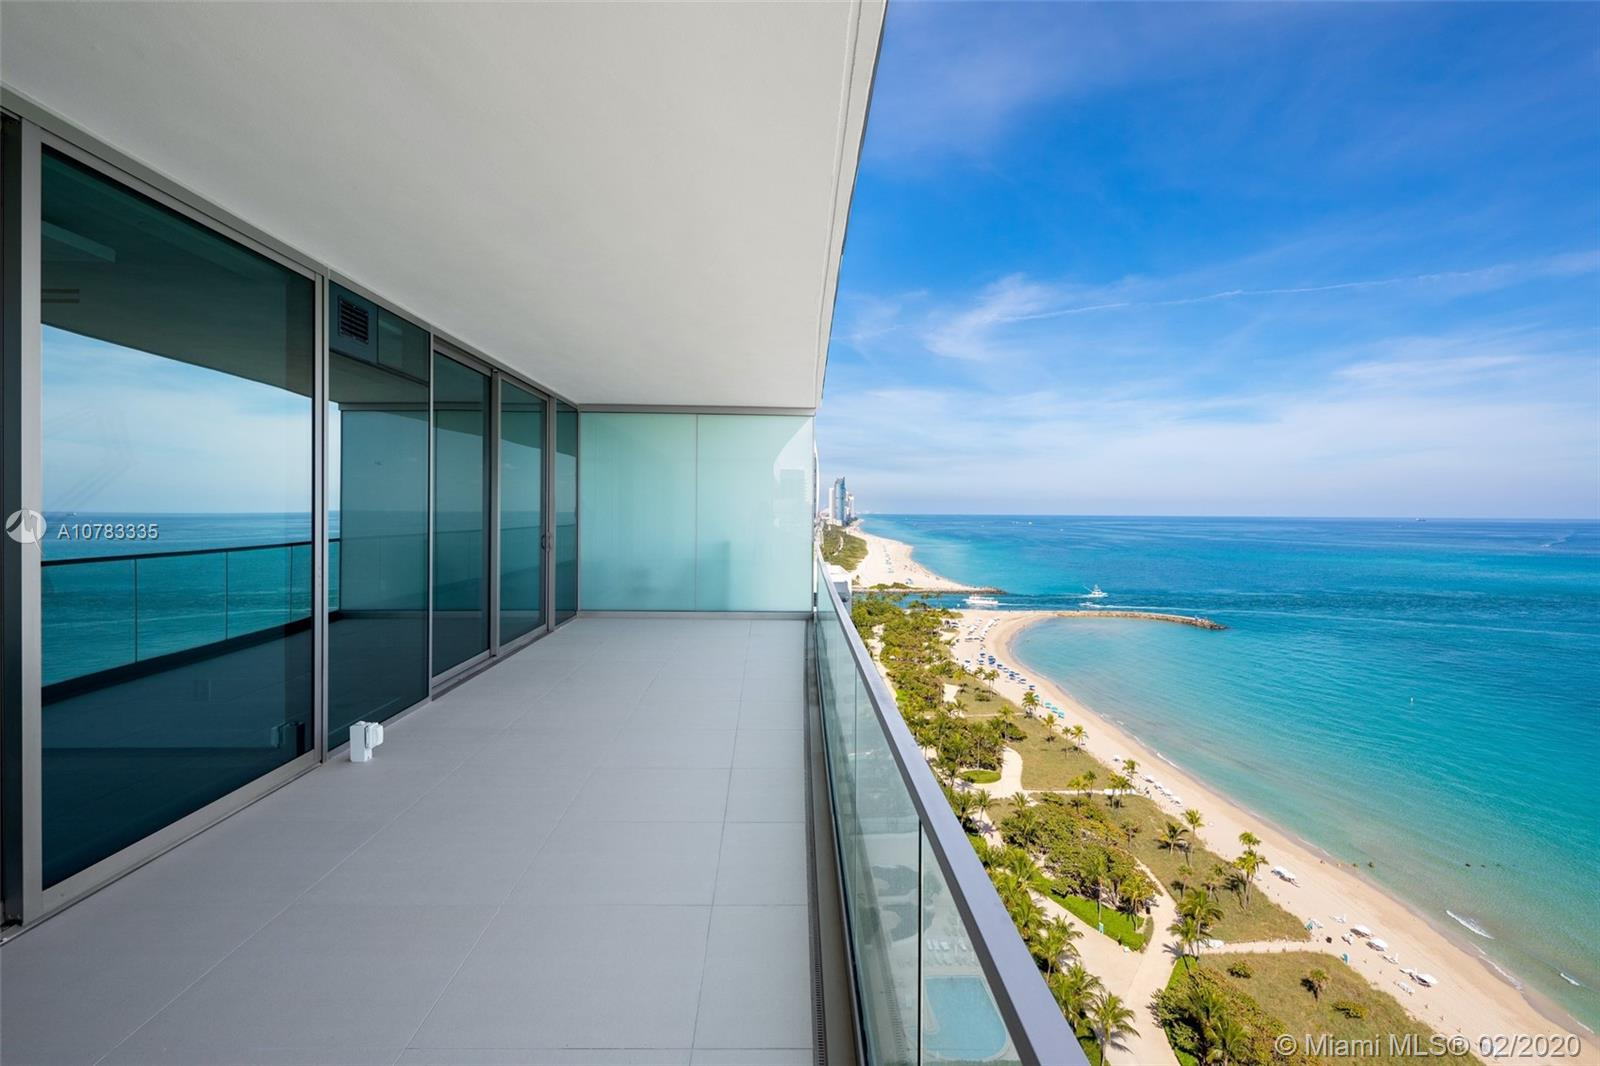 10201 Collins Ave #2103 Property Photo - Bal Harbour, FL real estate listing